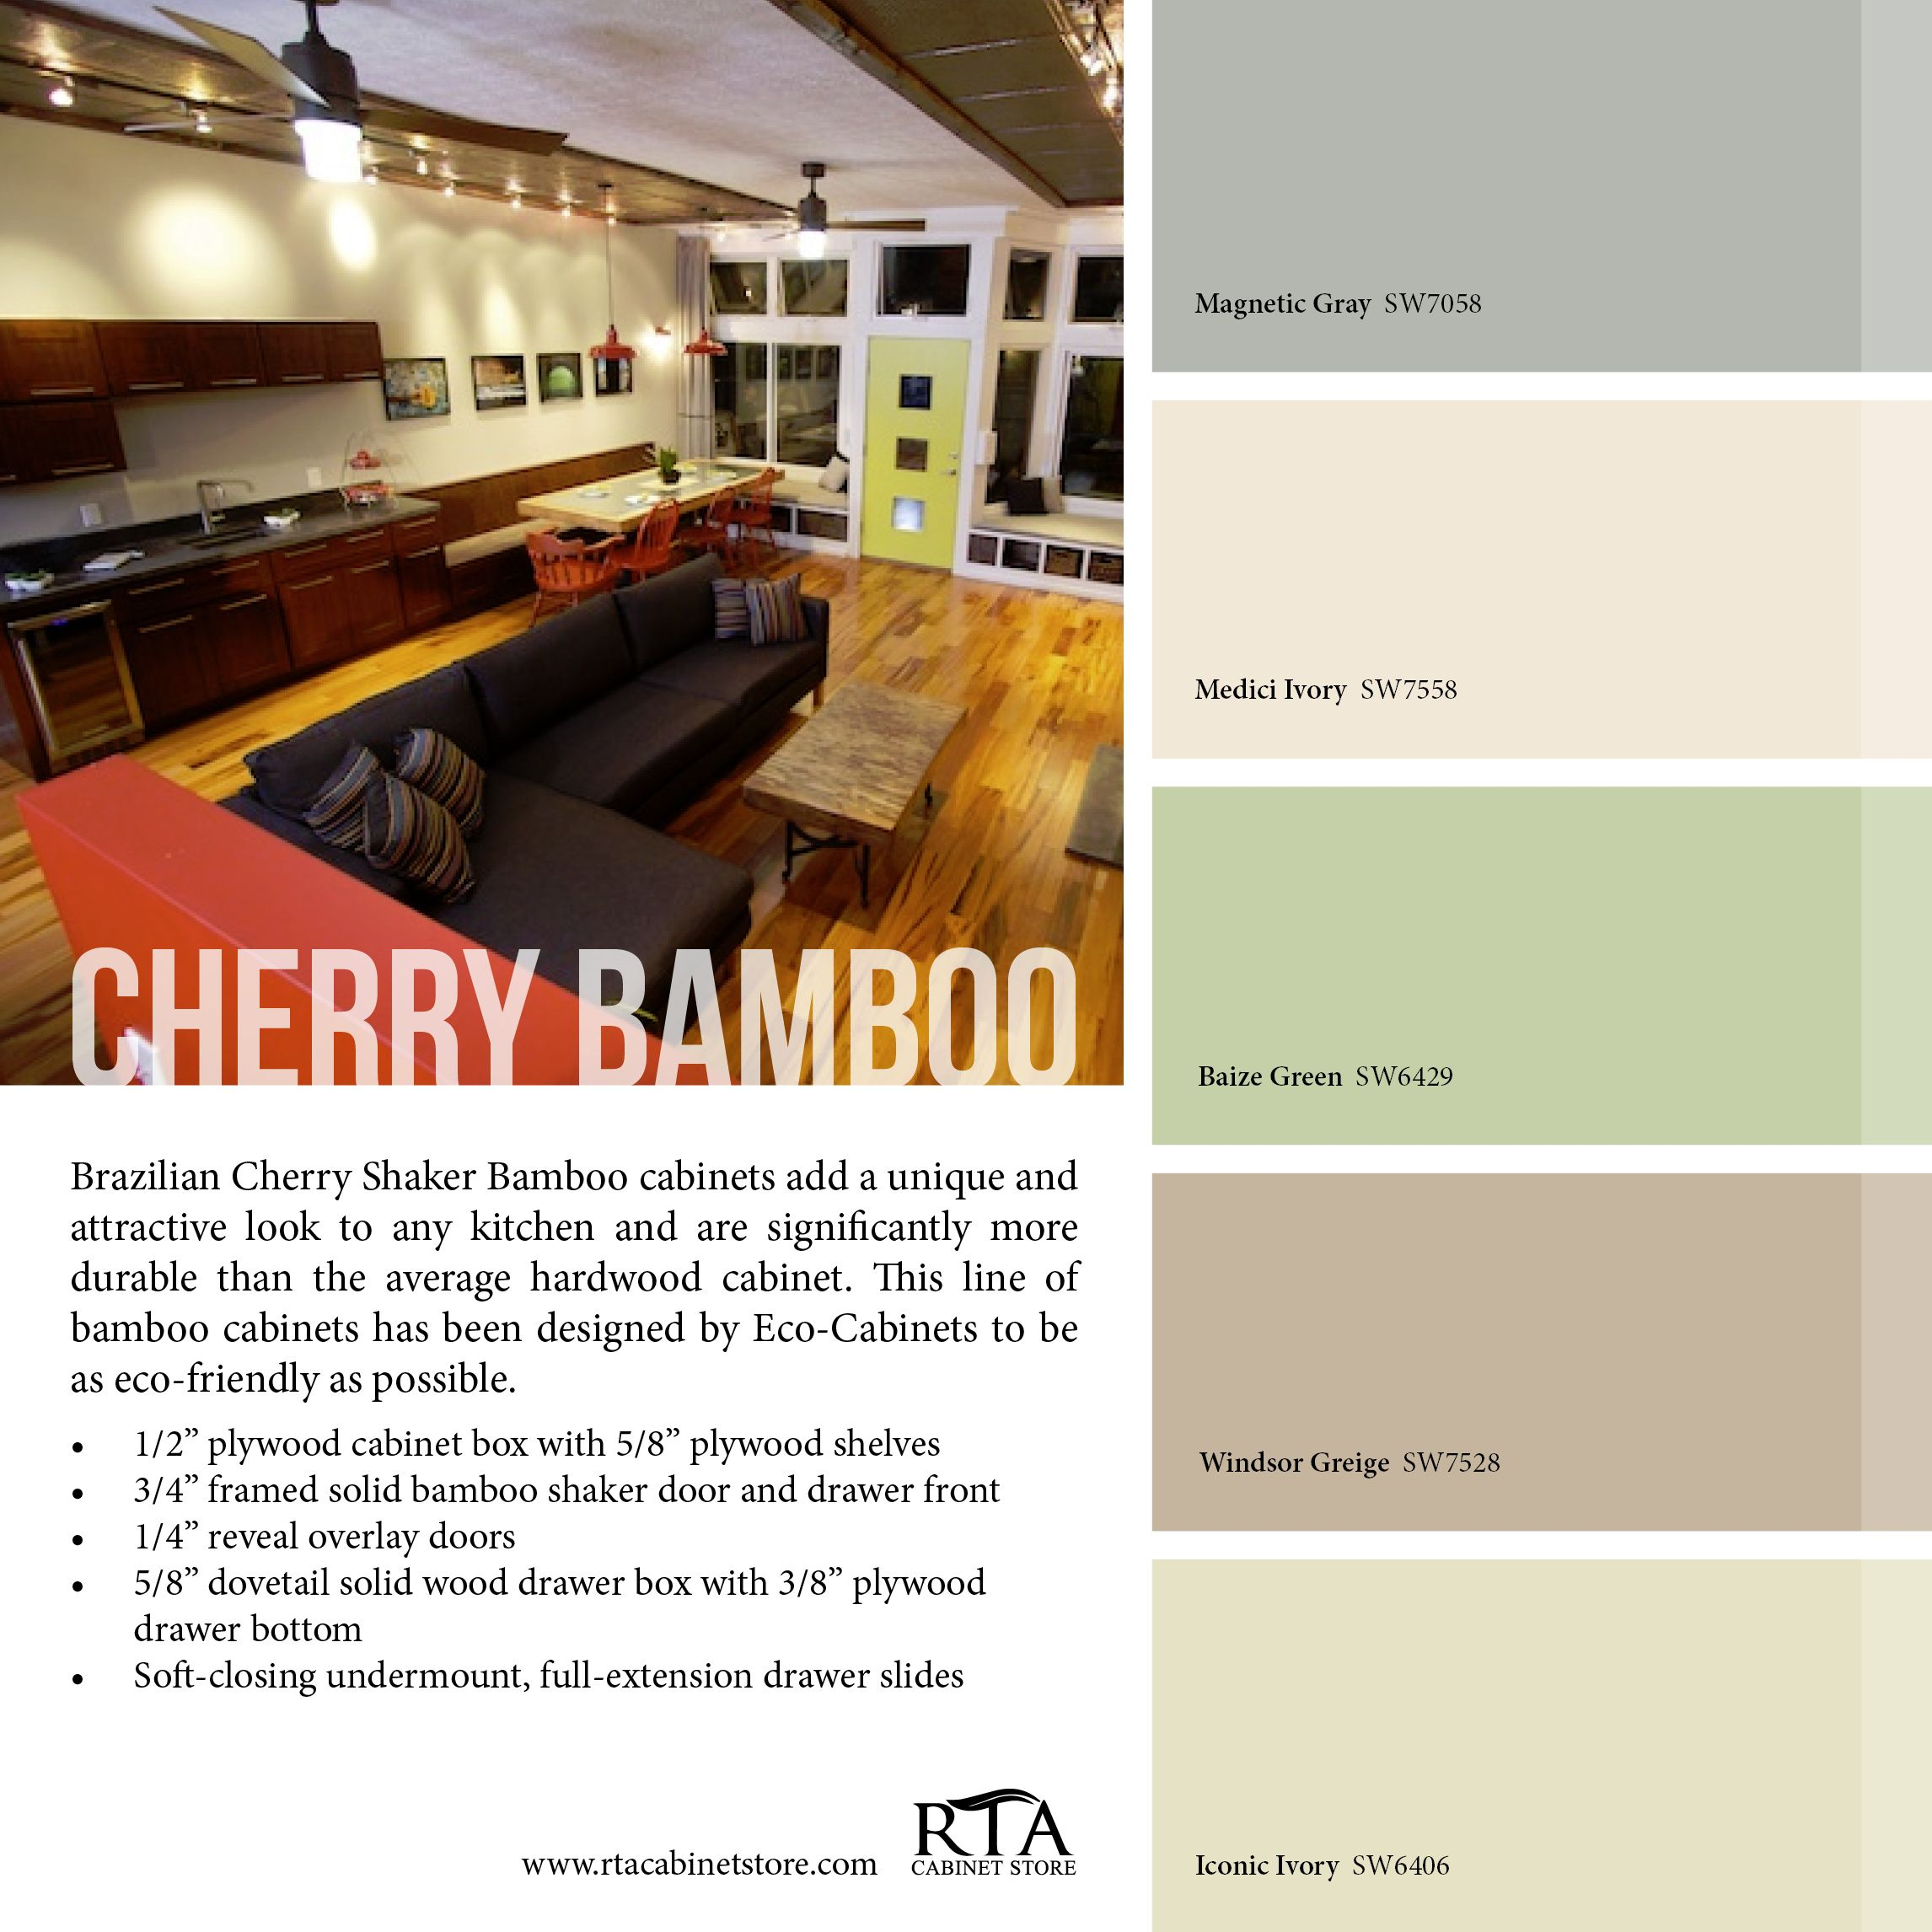 Color Palette To Go With Our Brazilian Cherry Bamboo Cabinet Line Kitchen Colors Kitchen Wall Colors Bamboo Cabinets